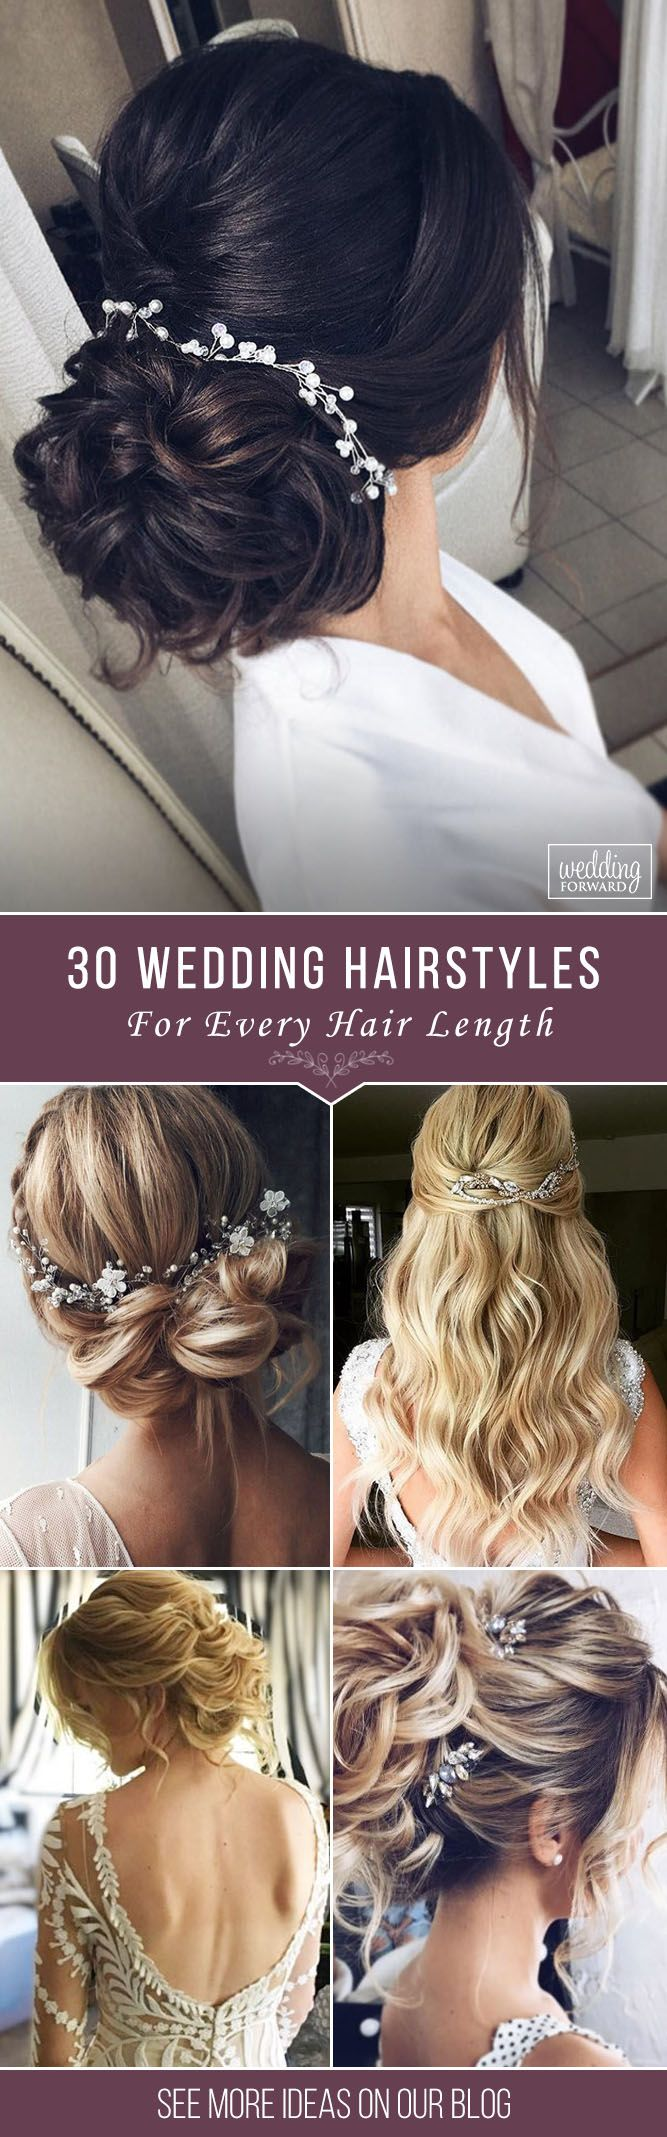 30 Stunning Wedding Hairstyles ❤ Creation of wedding hairstyle needs preparation. It'd be great if bride can make a trial version. Hope, our collection helps to make a right choice. See more: http://www.weddingforward.com/wedding-hairstyles-every-hair-length/ #wedding #bride #weddinghairstyles